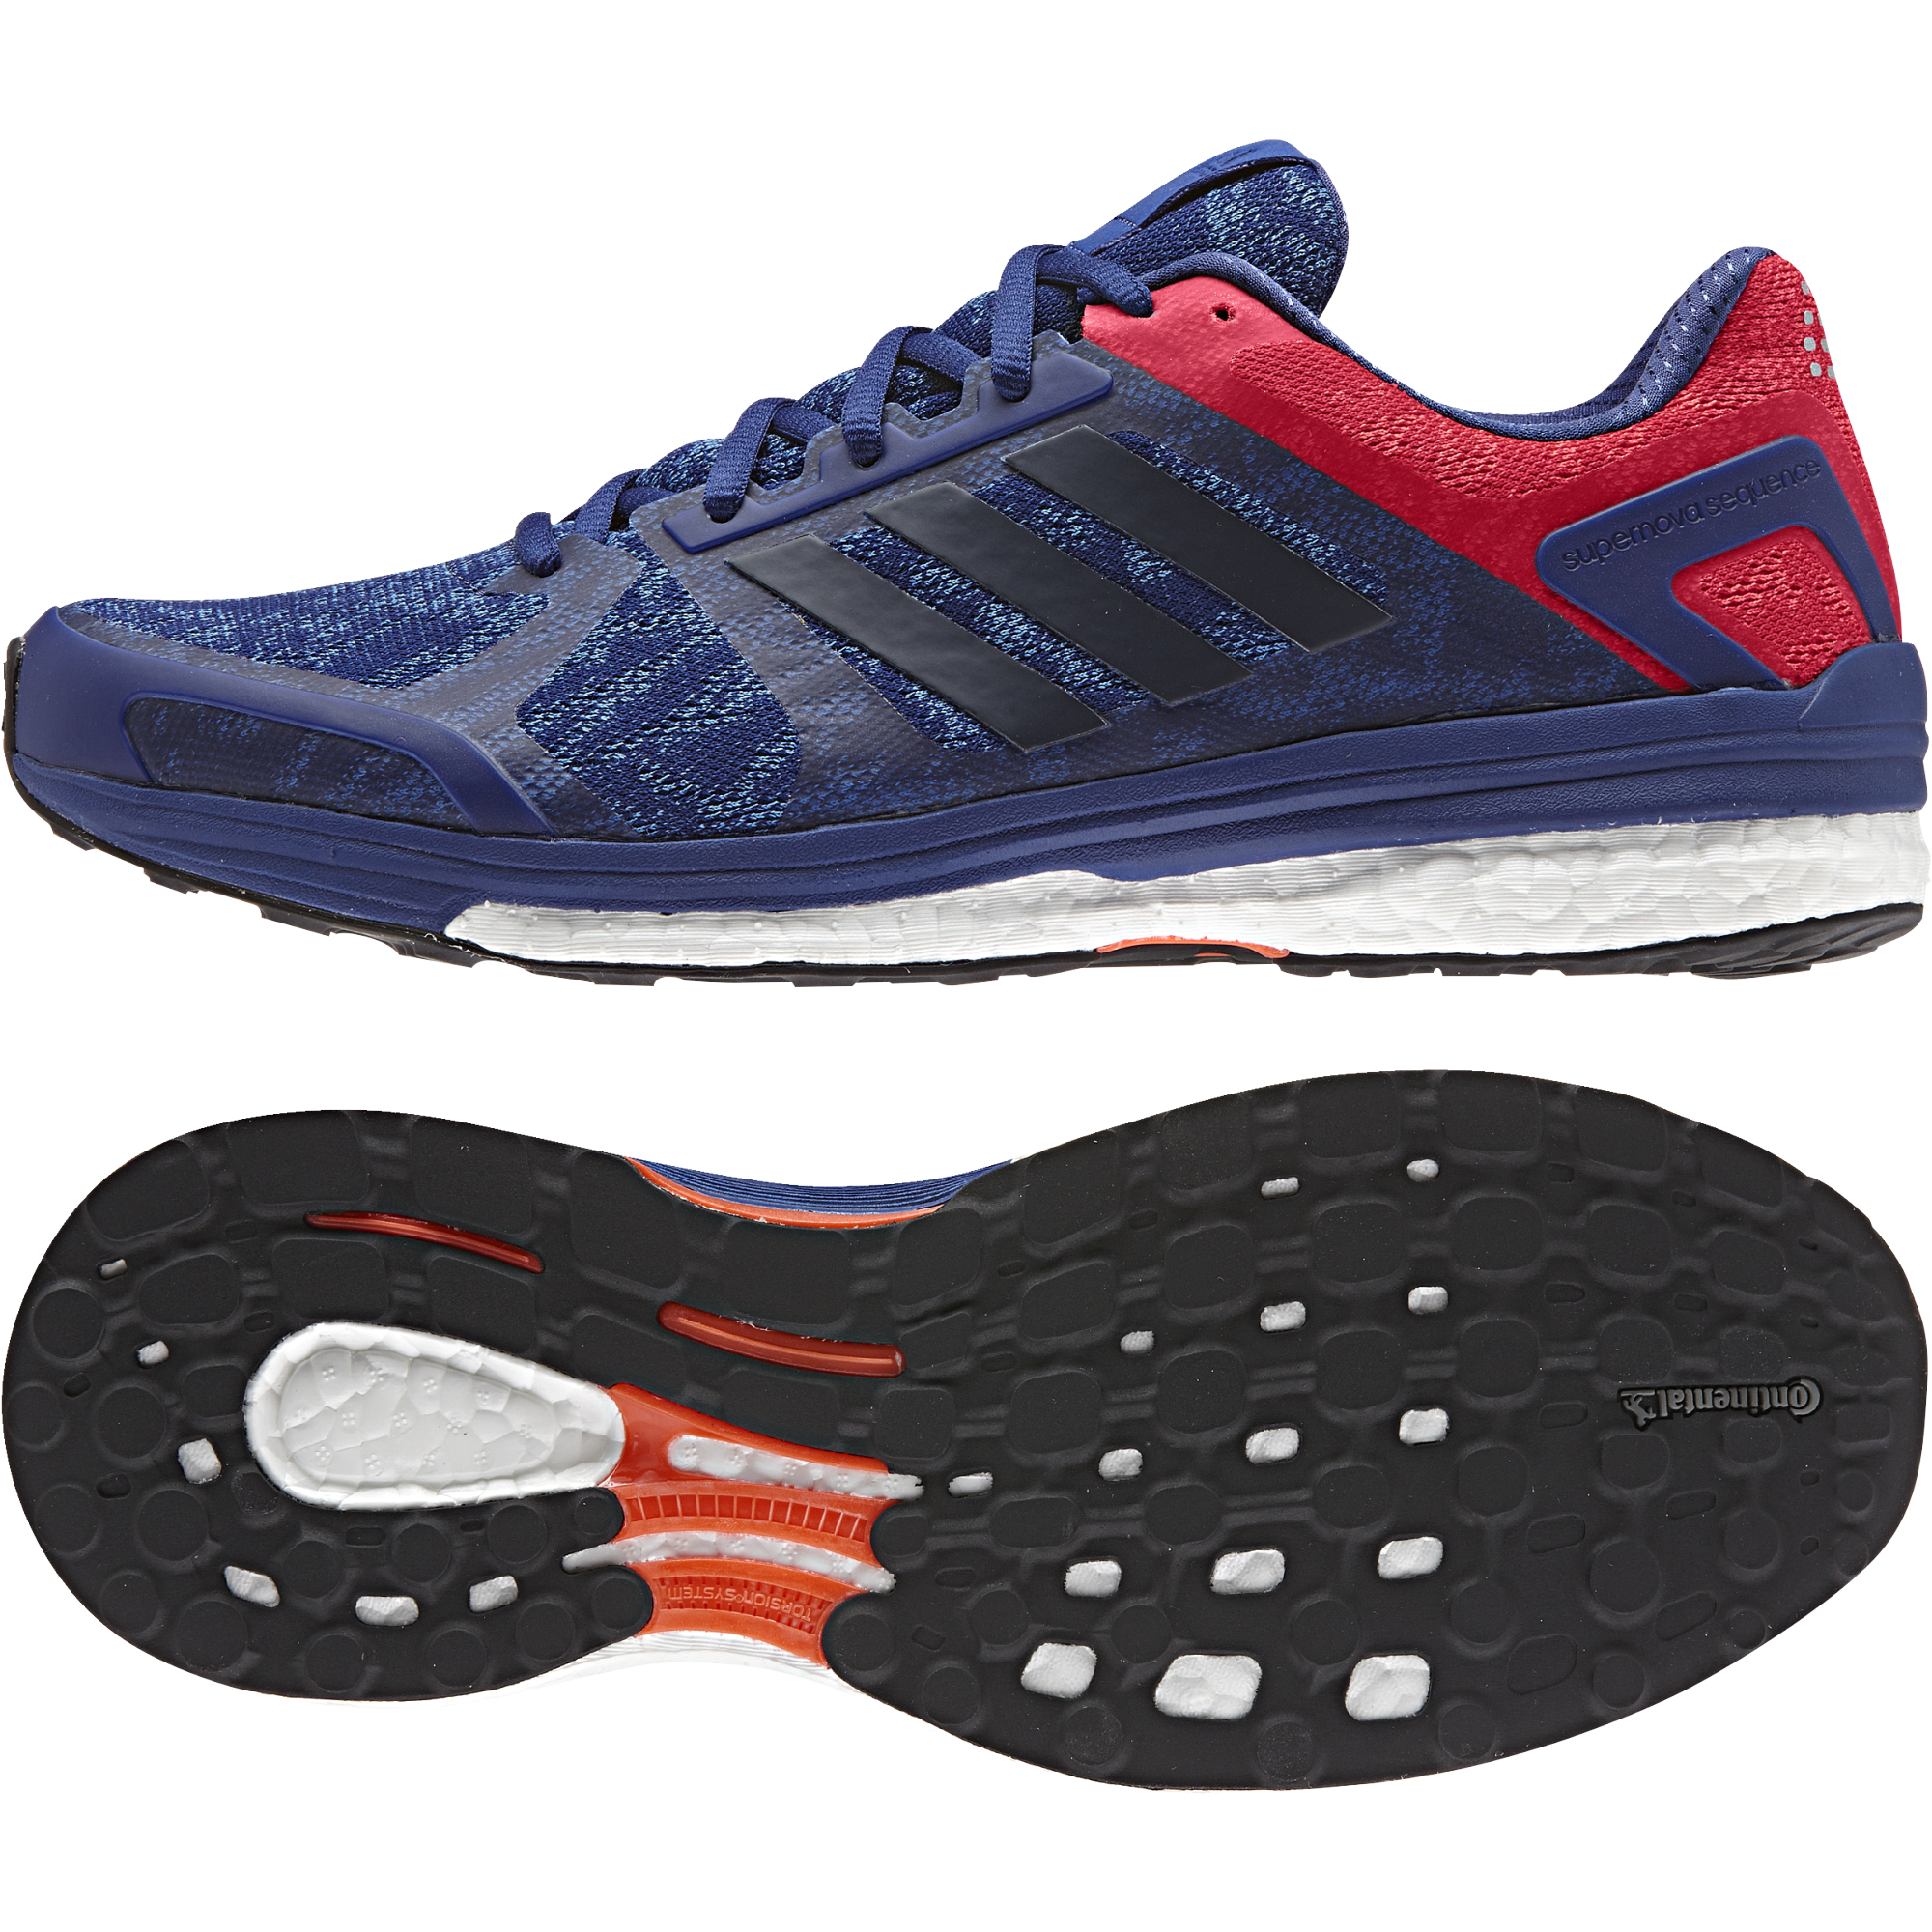 Adidas Sequence Boost 9 in Blau Rot